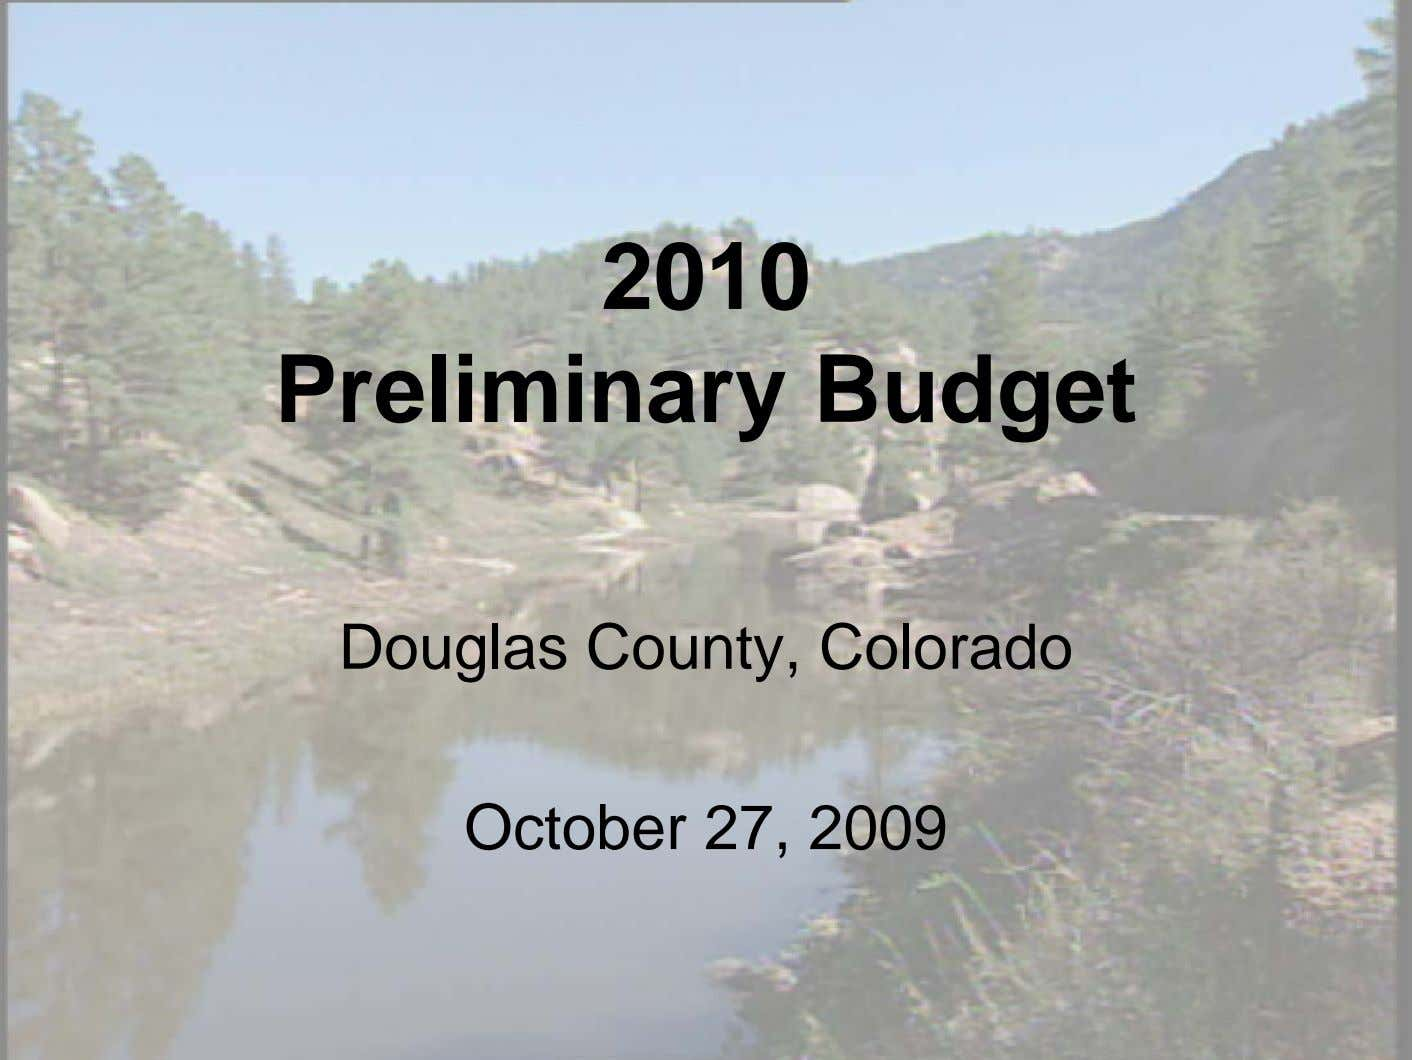 2010 Preliminary Budget Douglas County, Colorado October 27, 2009